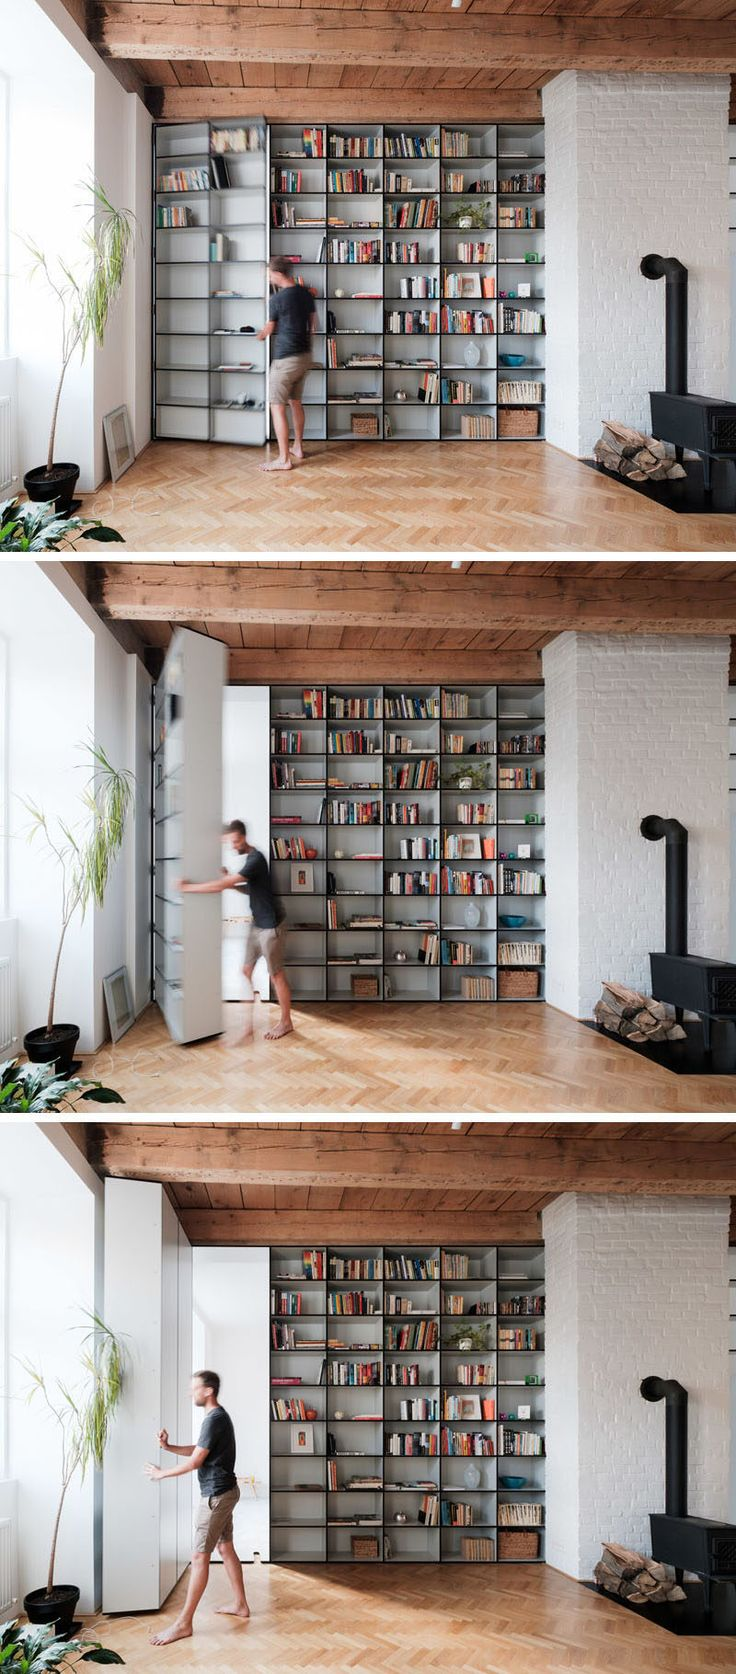 One of these floor-to-ceiling bookshelves is not like the rest. Instead it has a secret door that opens up to a hidden bedroom.